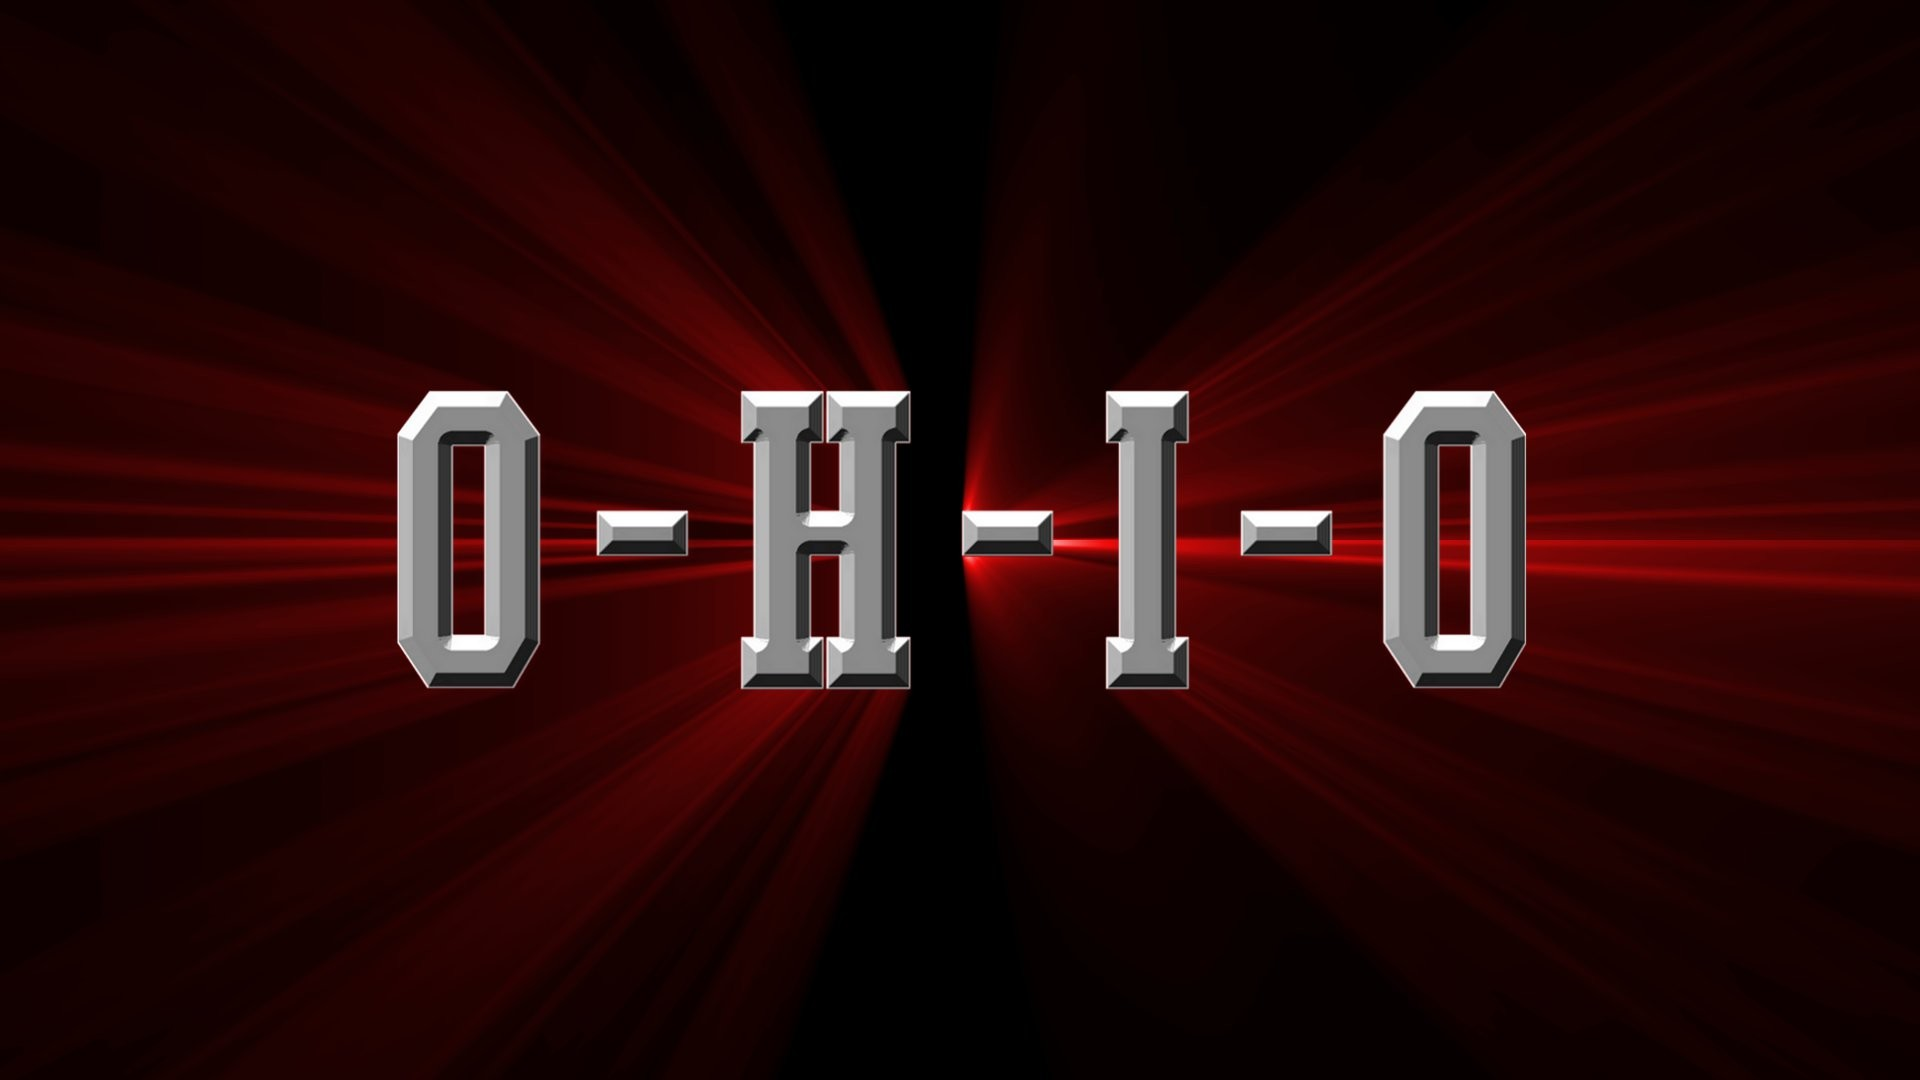 1920x1080 HDQ, Recommended HD Ohio State Football Wallpaper